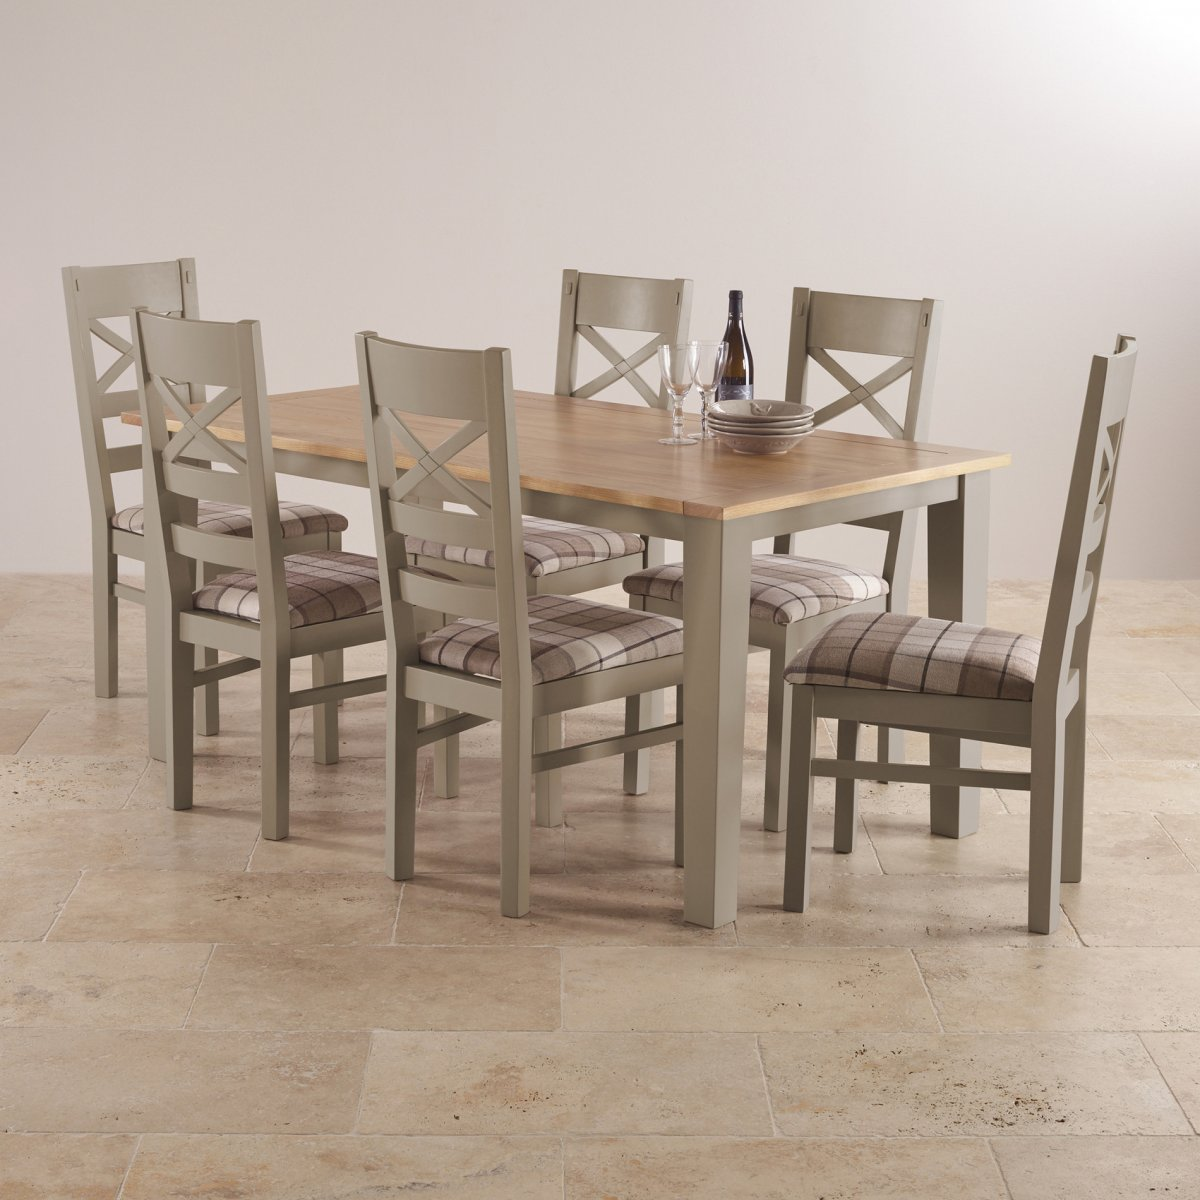 light oak dining chairs heavy duty rocking chair st ives set in grey painted acacia table 43 6